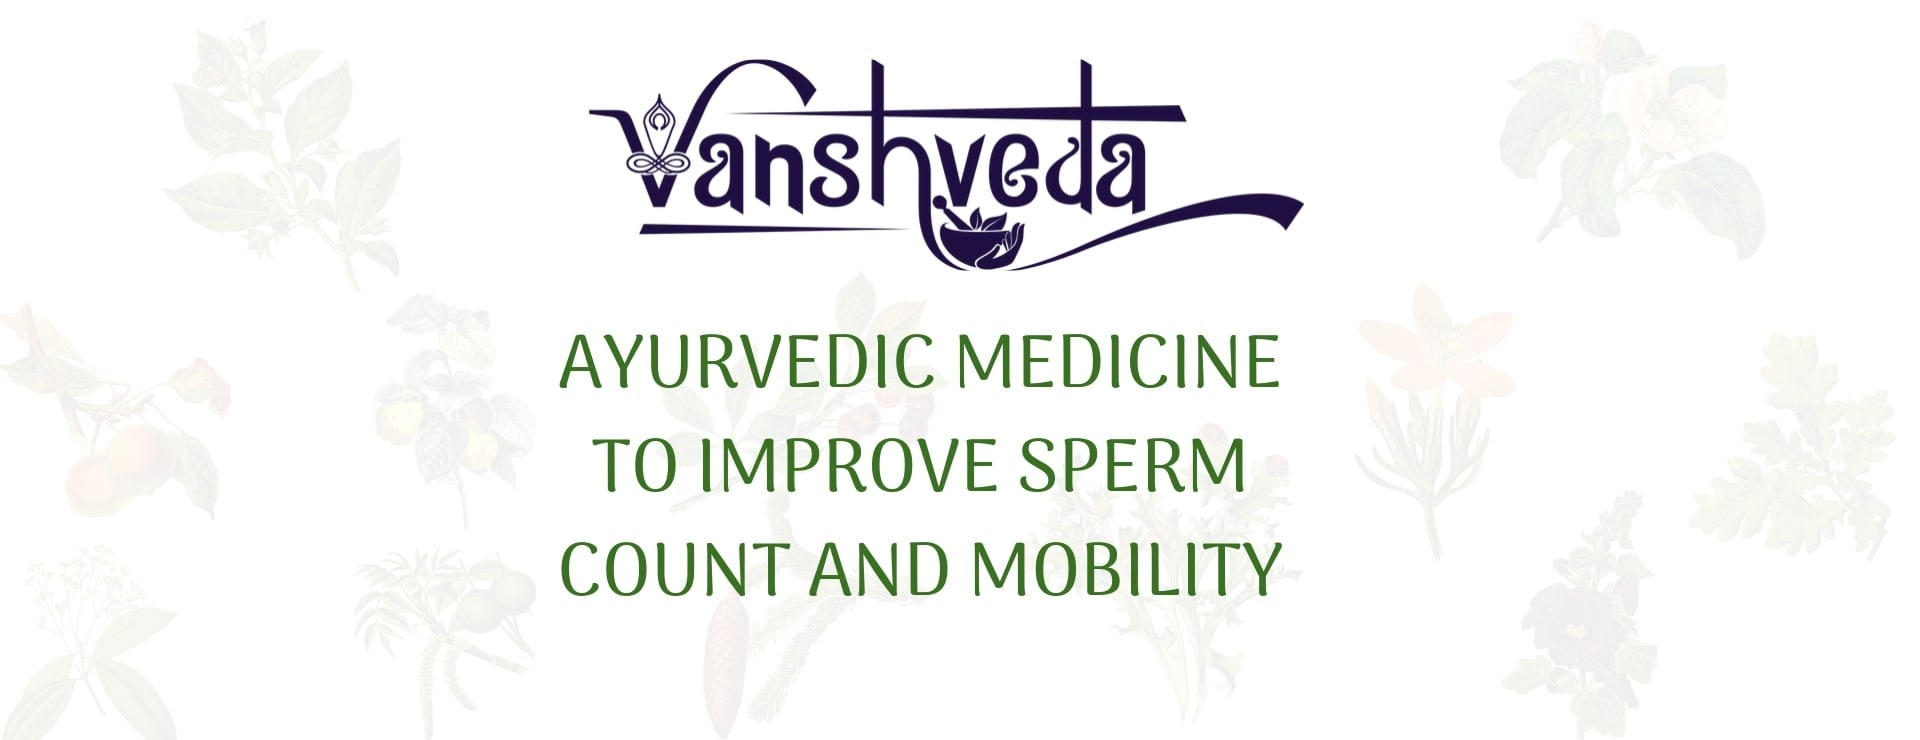 Ayurvedic Medicine to Improve Sperm Count and Mobility